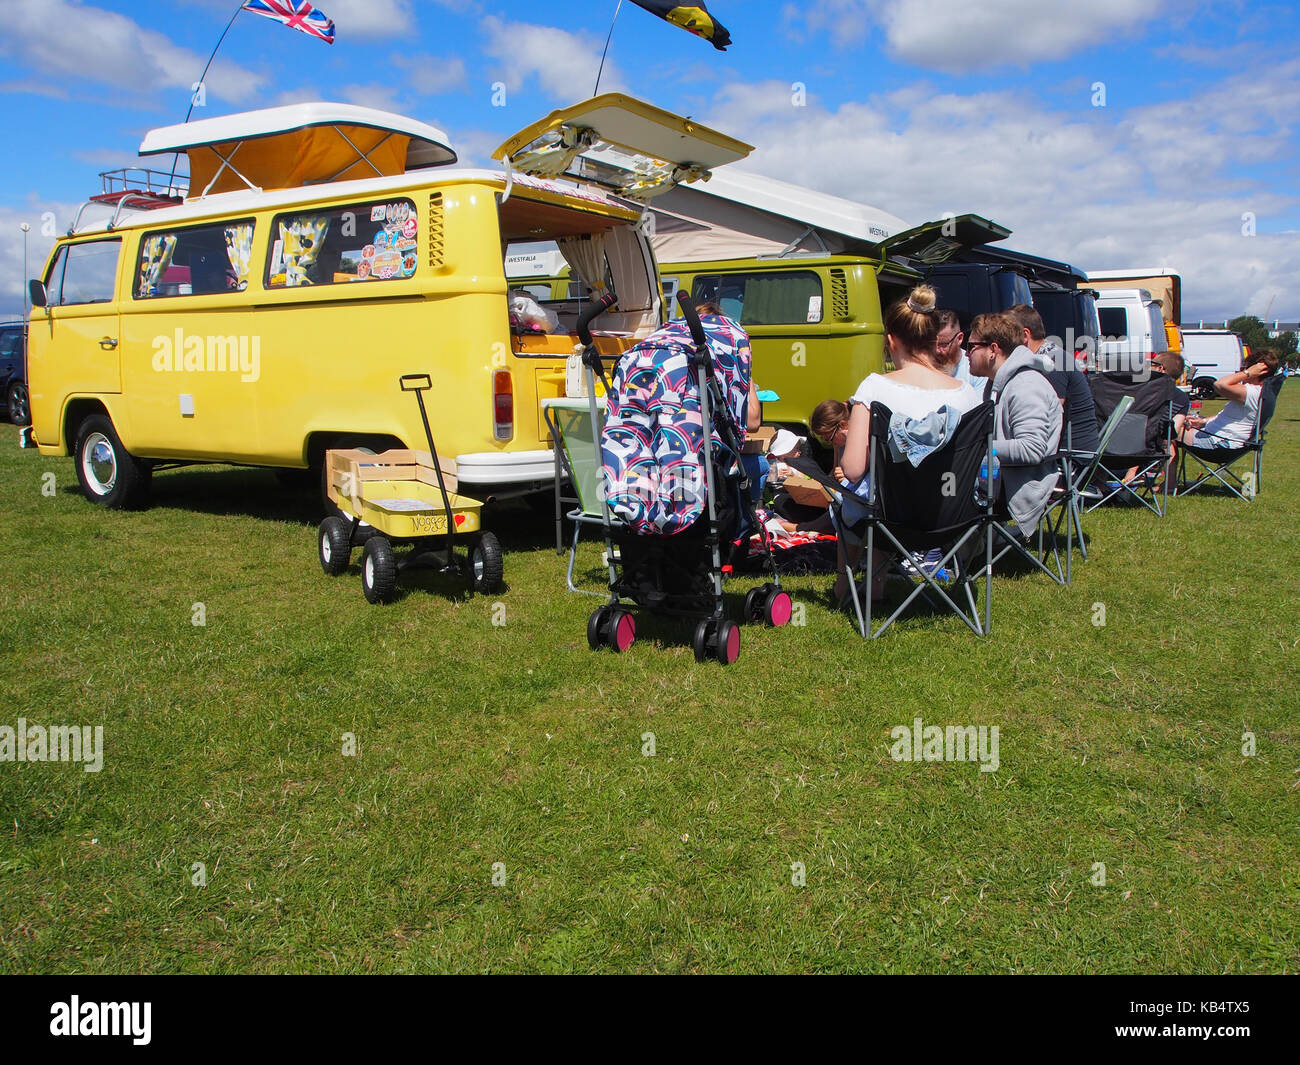 people on camping chairs enjoying a VW campervan meet - Stock Image